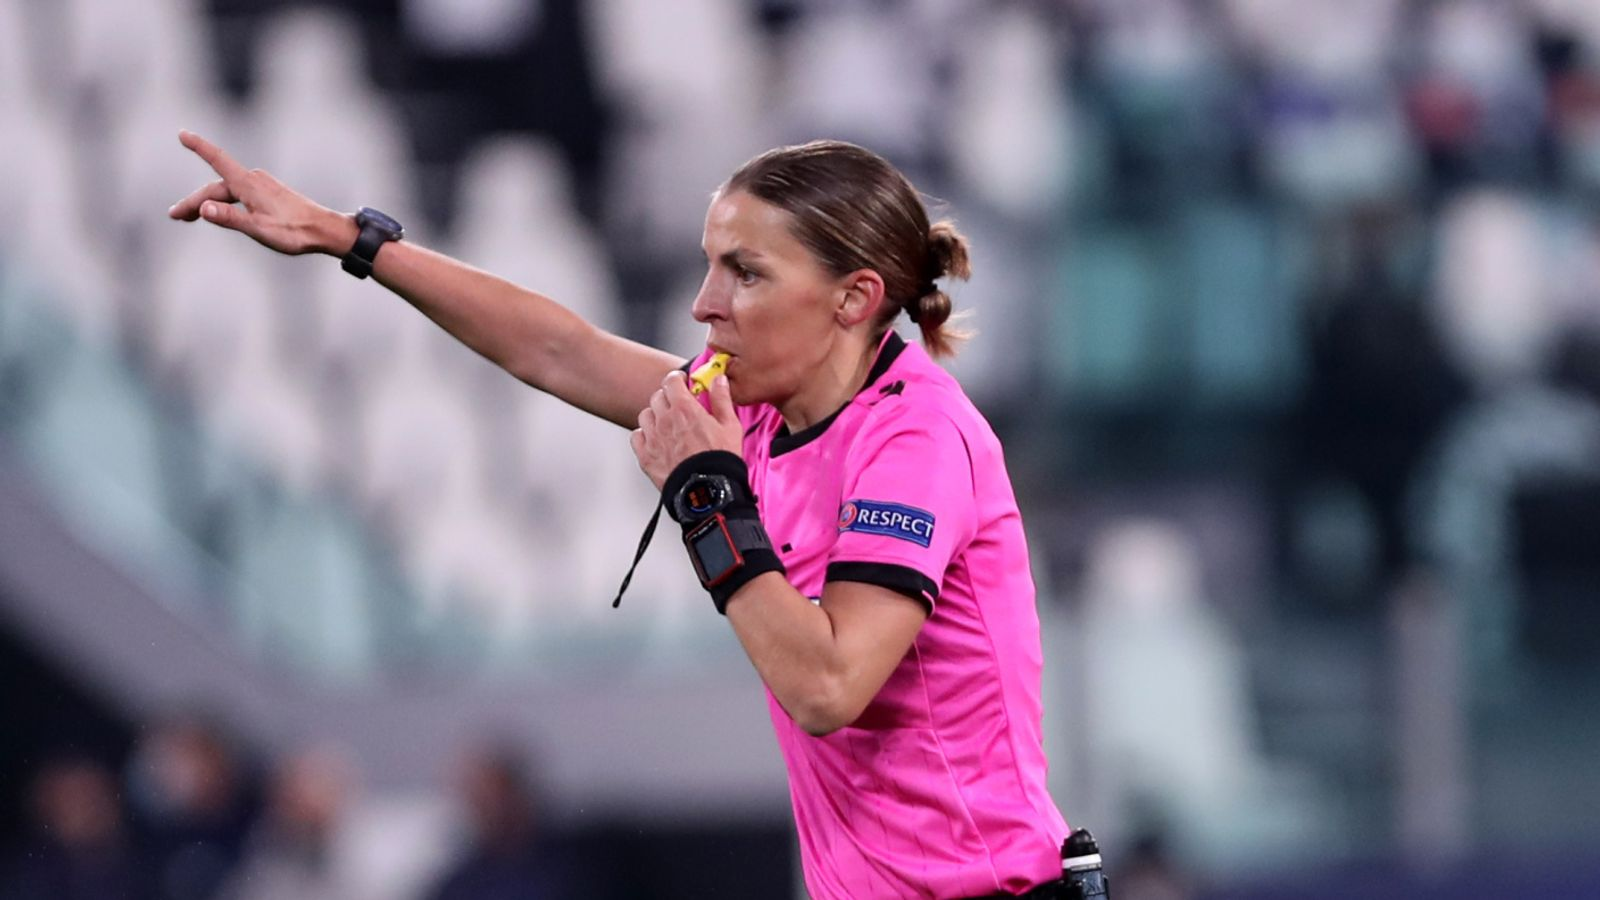 stephanie-frappart-can-become-role-model-for-female-refs-says-fas-joanna-stimpson